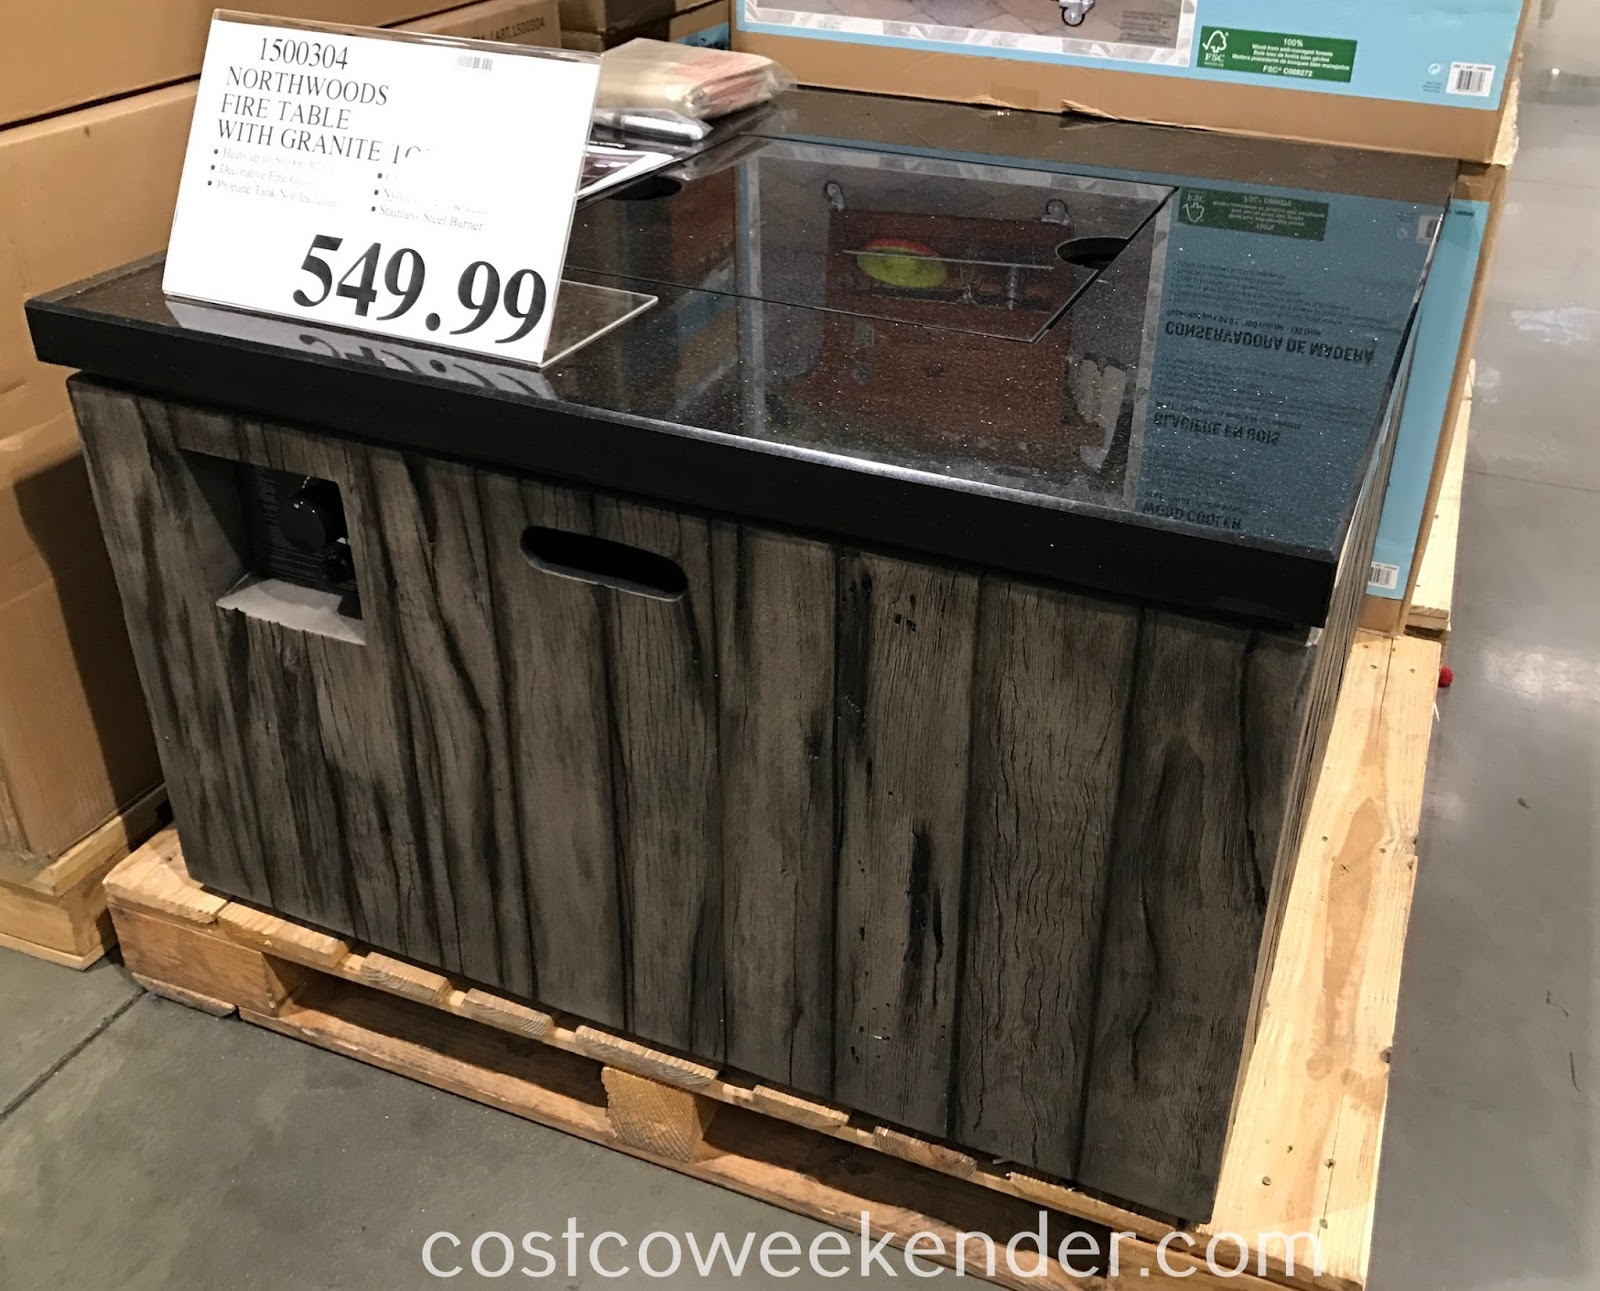 Costco 1500304 - Northwoods Gas Fire Table with Granite Top: great for any backyard or patio